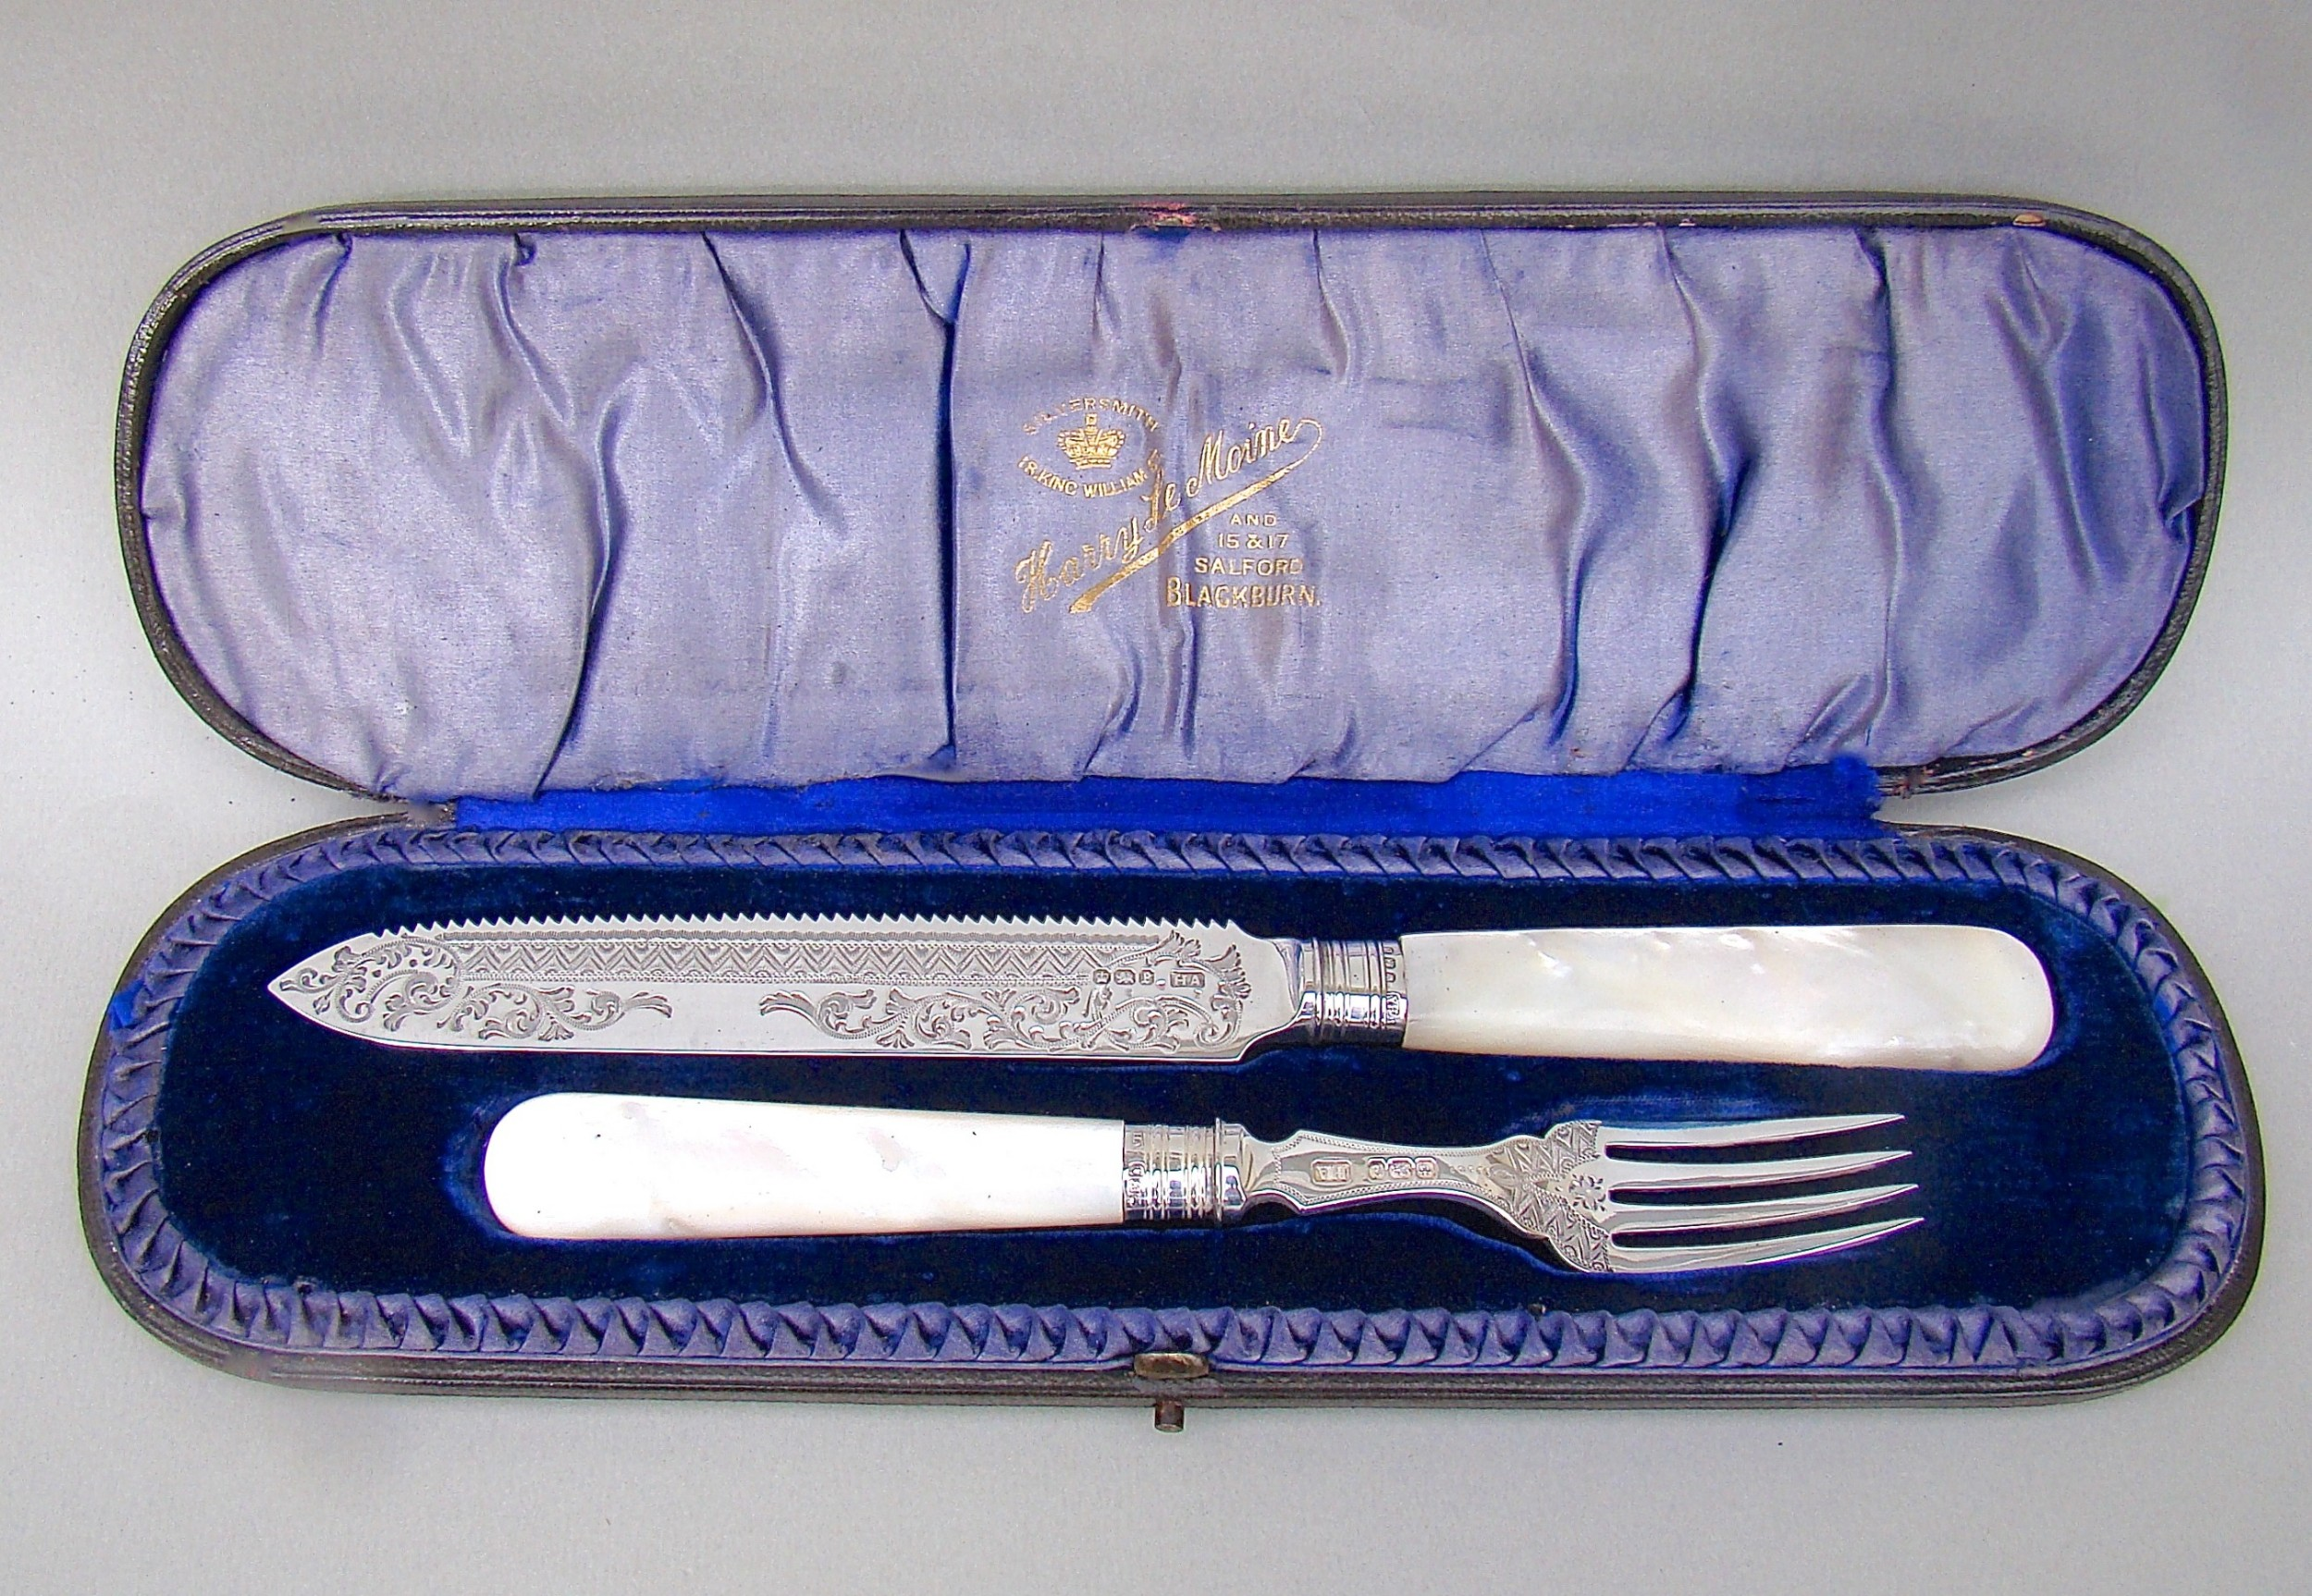 cased victorian silver mother of pearl cake knife fork by the atkins brothers sheffield 1897